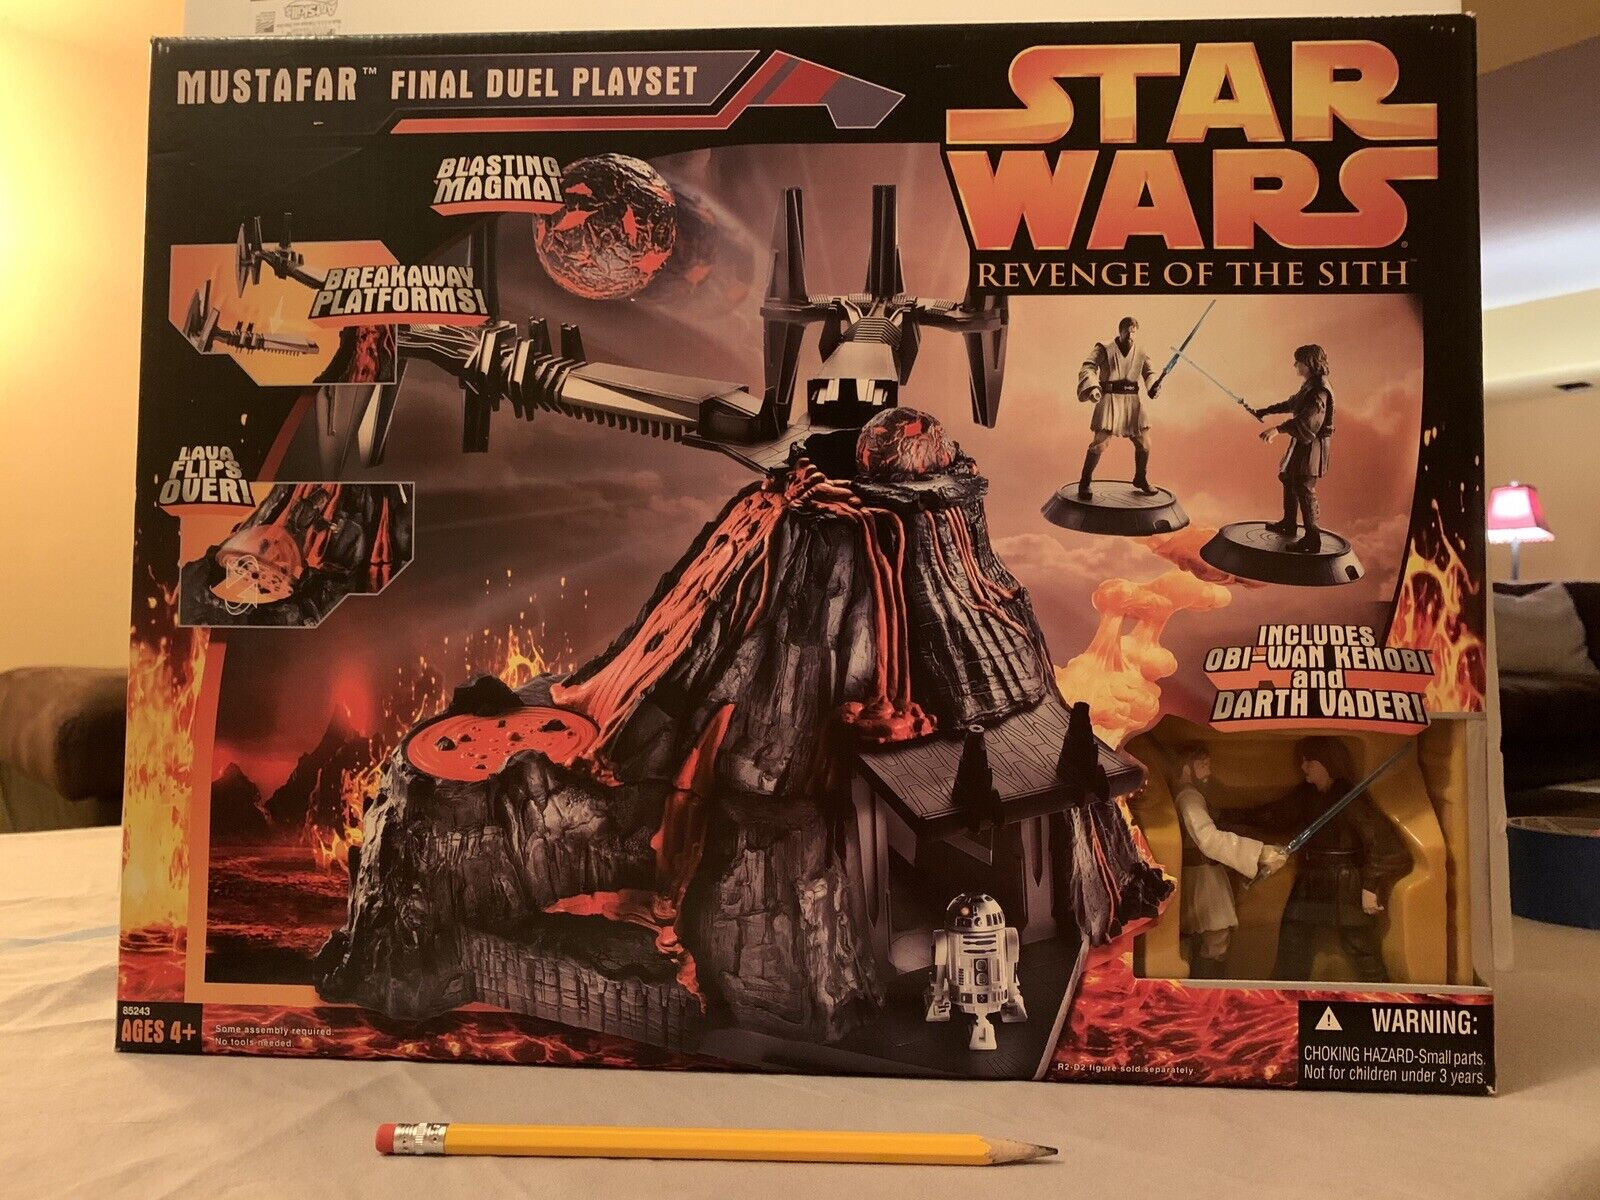 Star Wars Revenge Of The Sith Mustafar Final Duel Playset For Sale Online Ebay